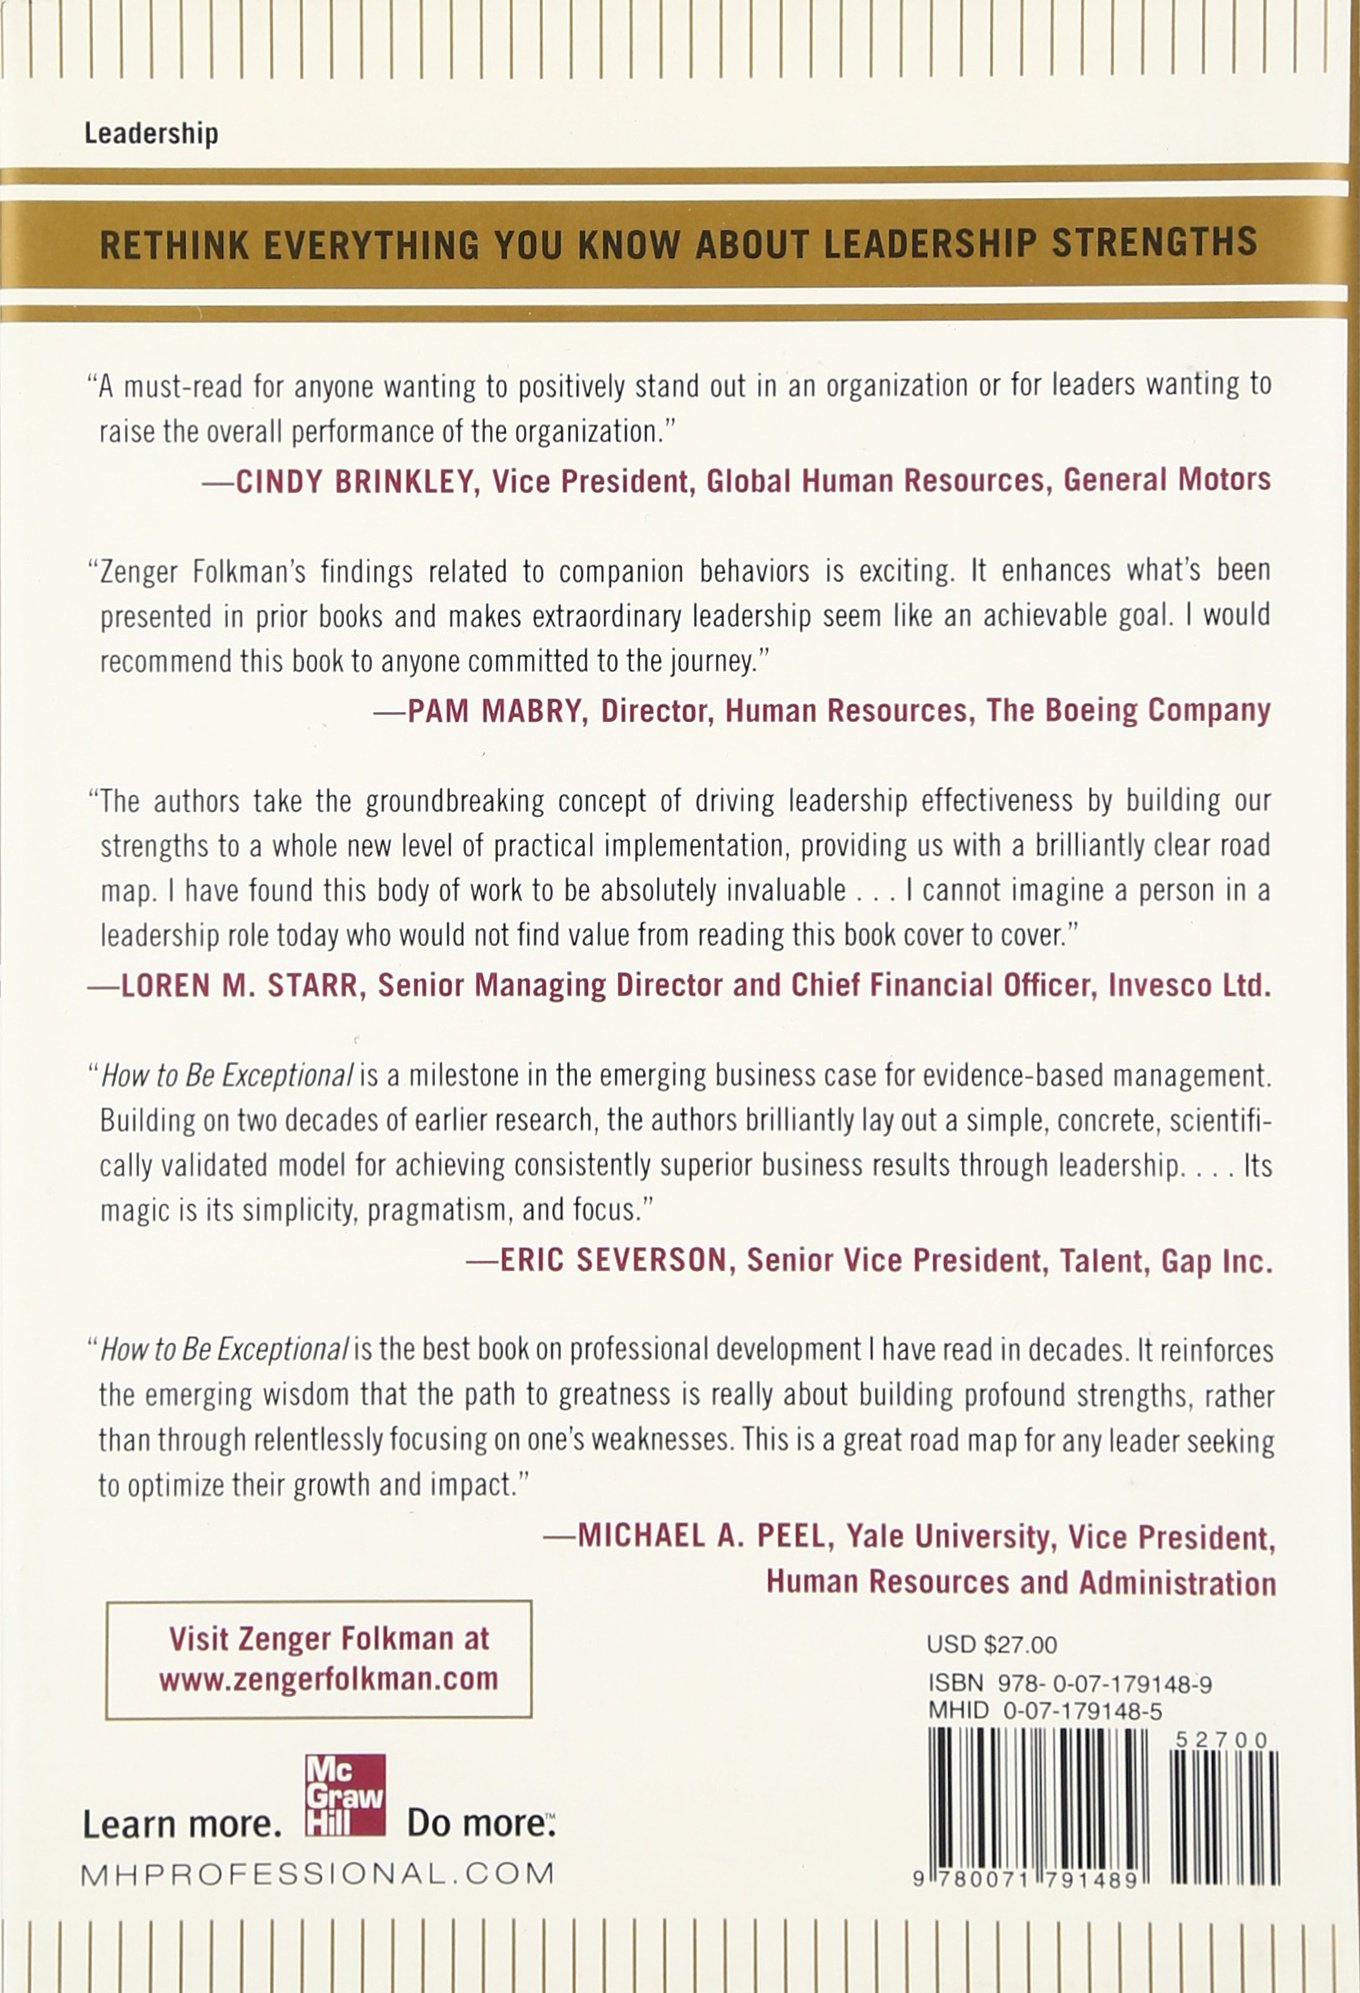 how to be exceptional drive leadership success by magnifying your how to be exceptional drive leadership success by magnifying your strengths management leadership john zenger joseph folkman jr robert h sherwin